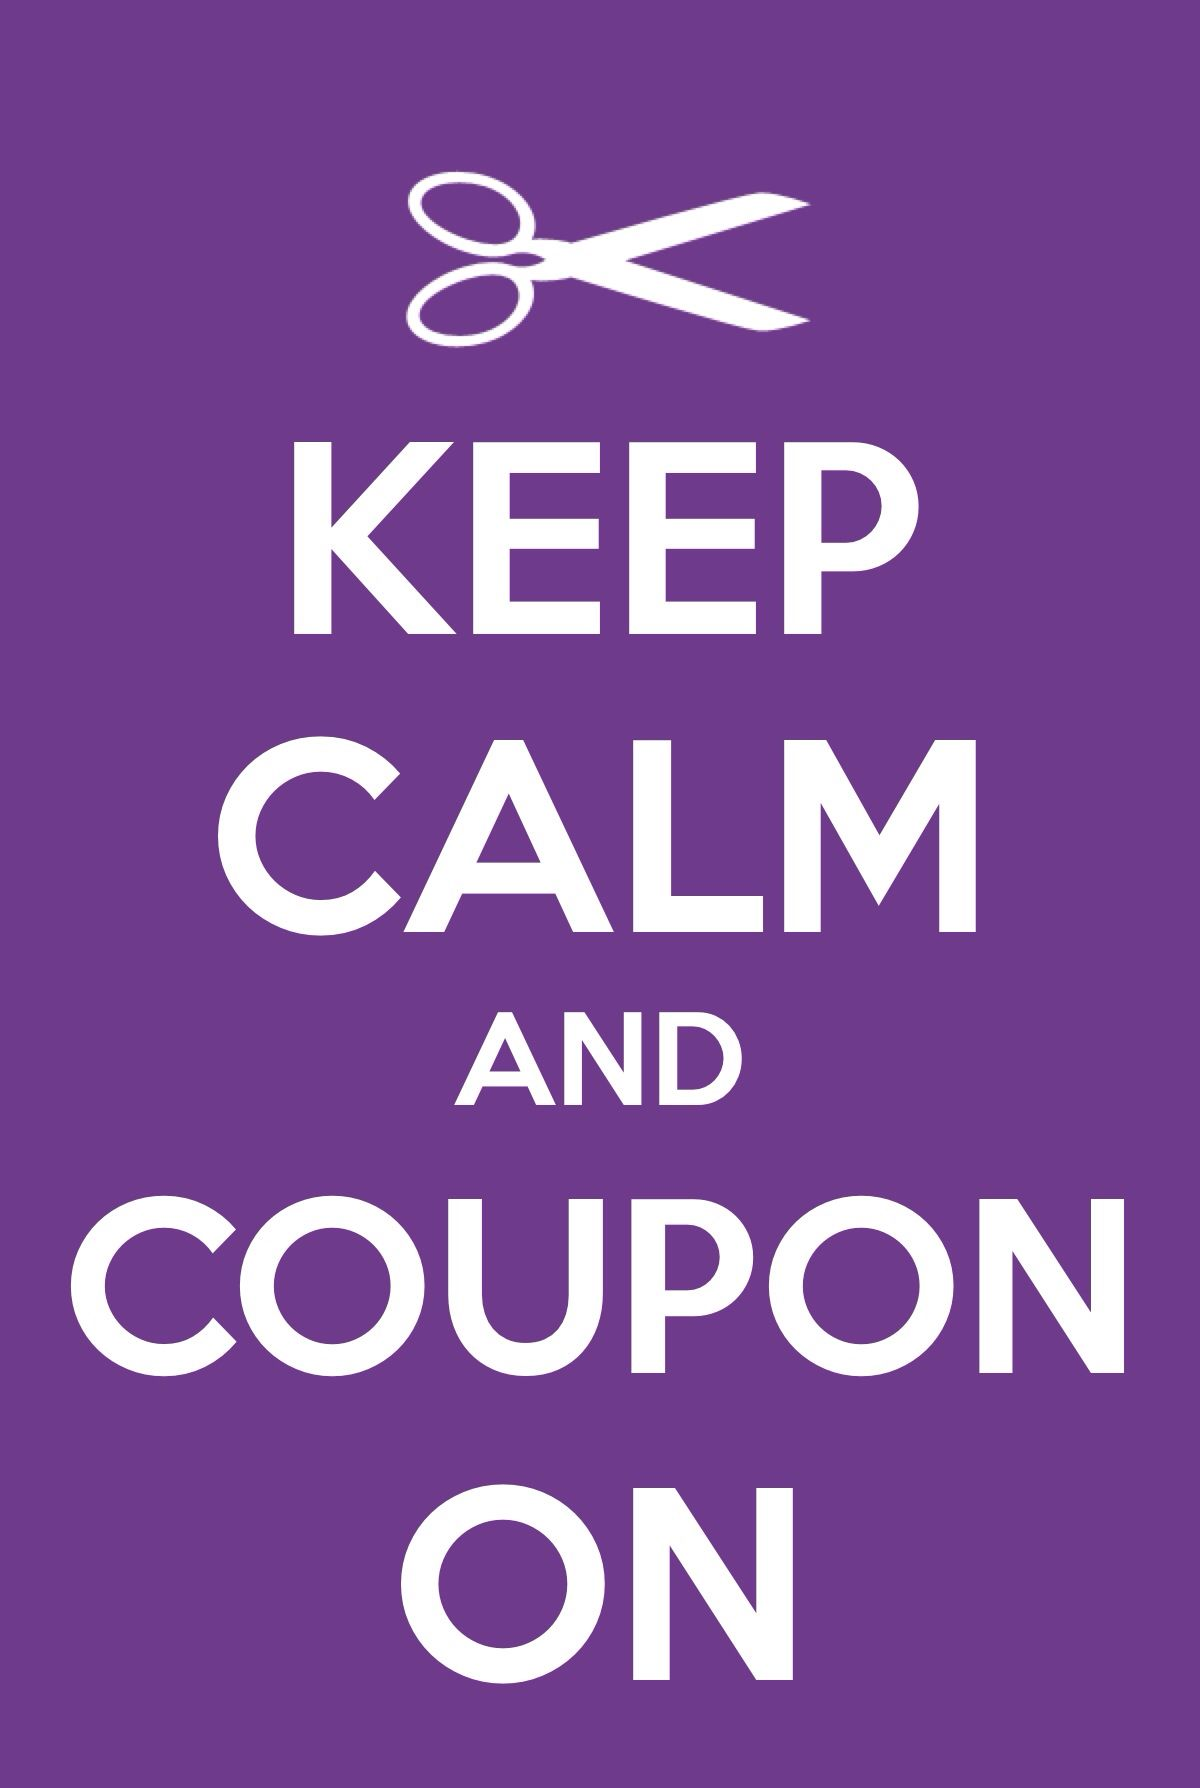 CAUTION Couponer at work Couponing Humor Pinterest